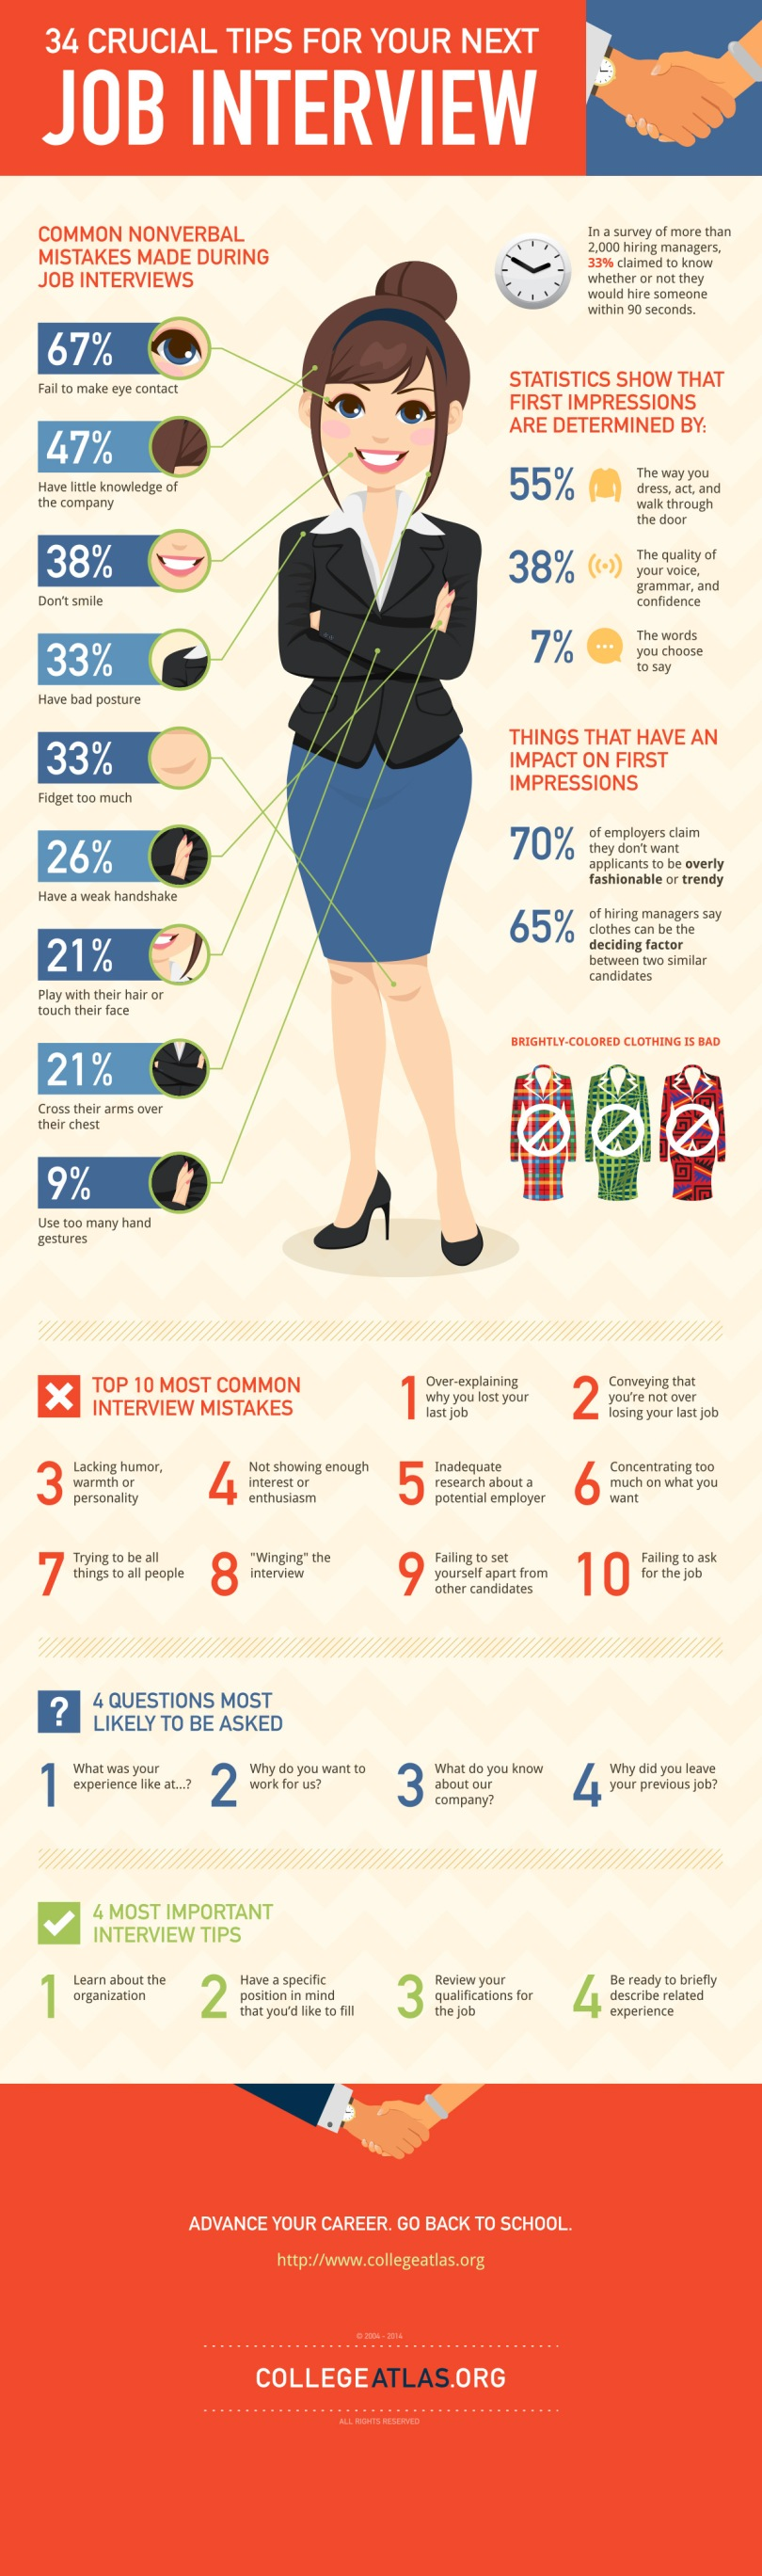 what to wear in a job interview fashion 101² day 5 nancy wang job interview infographic